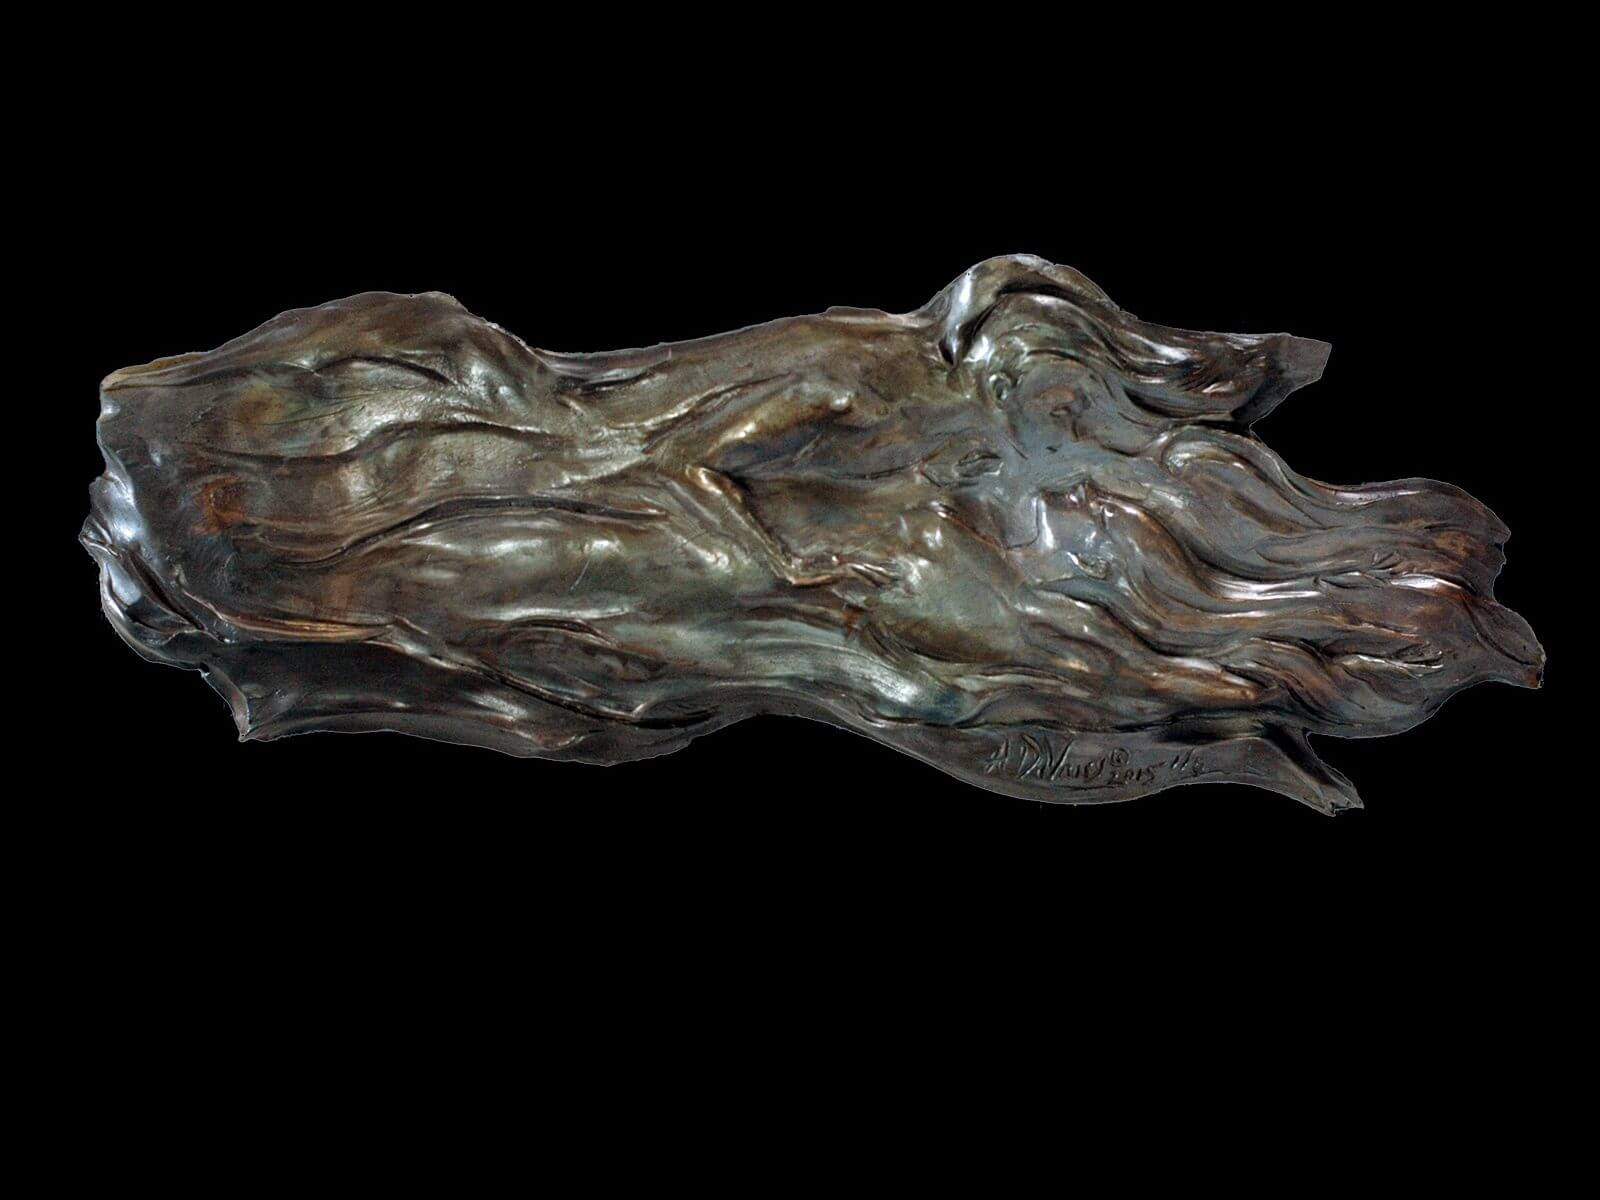 Cloud Lovers a bronze figurative relief wall sculpture by Andrew DeVries